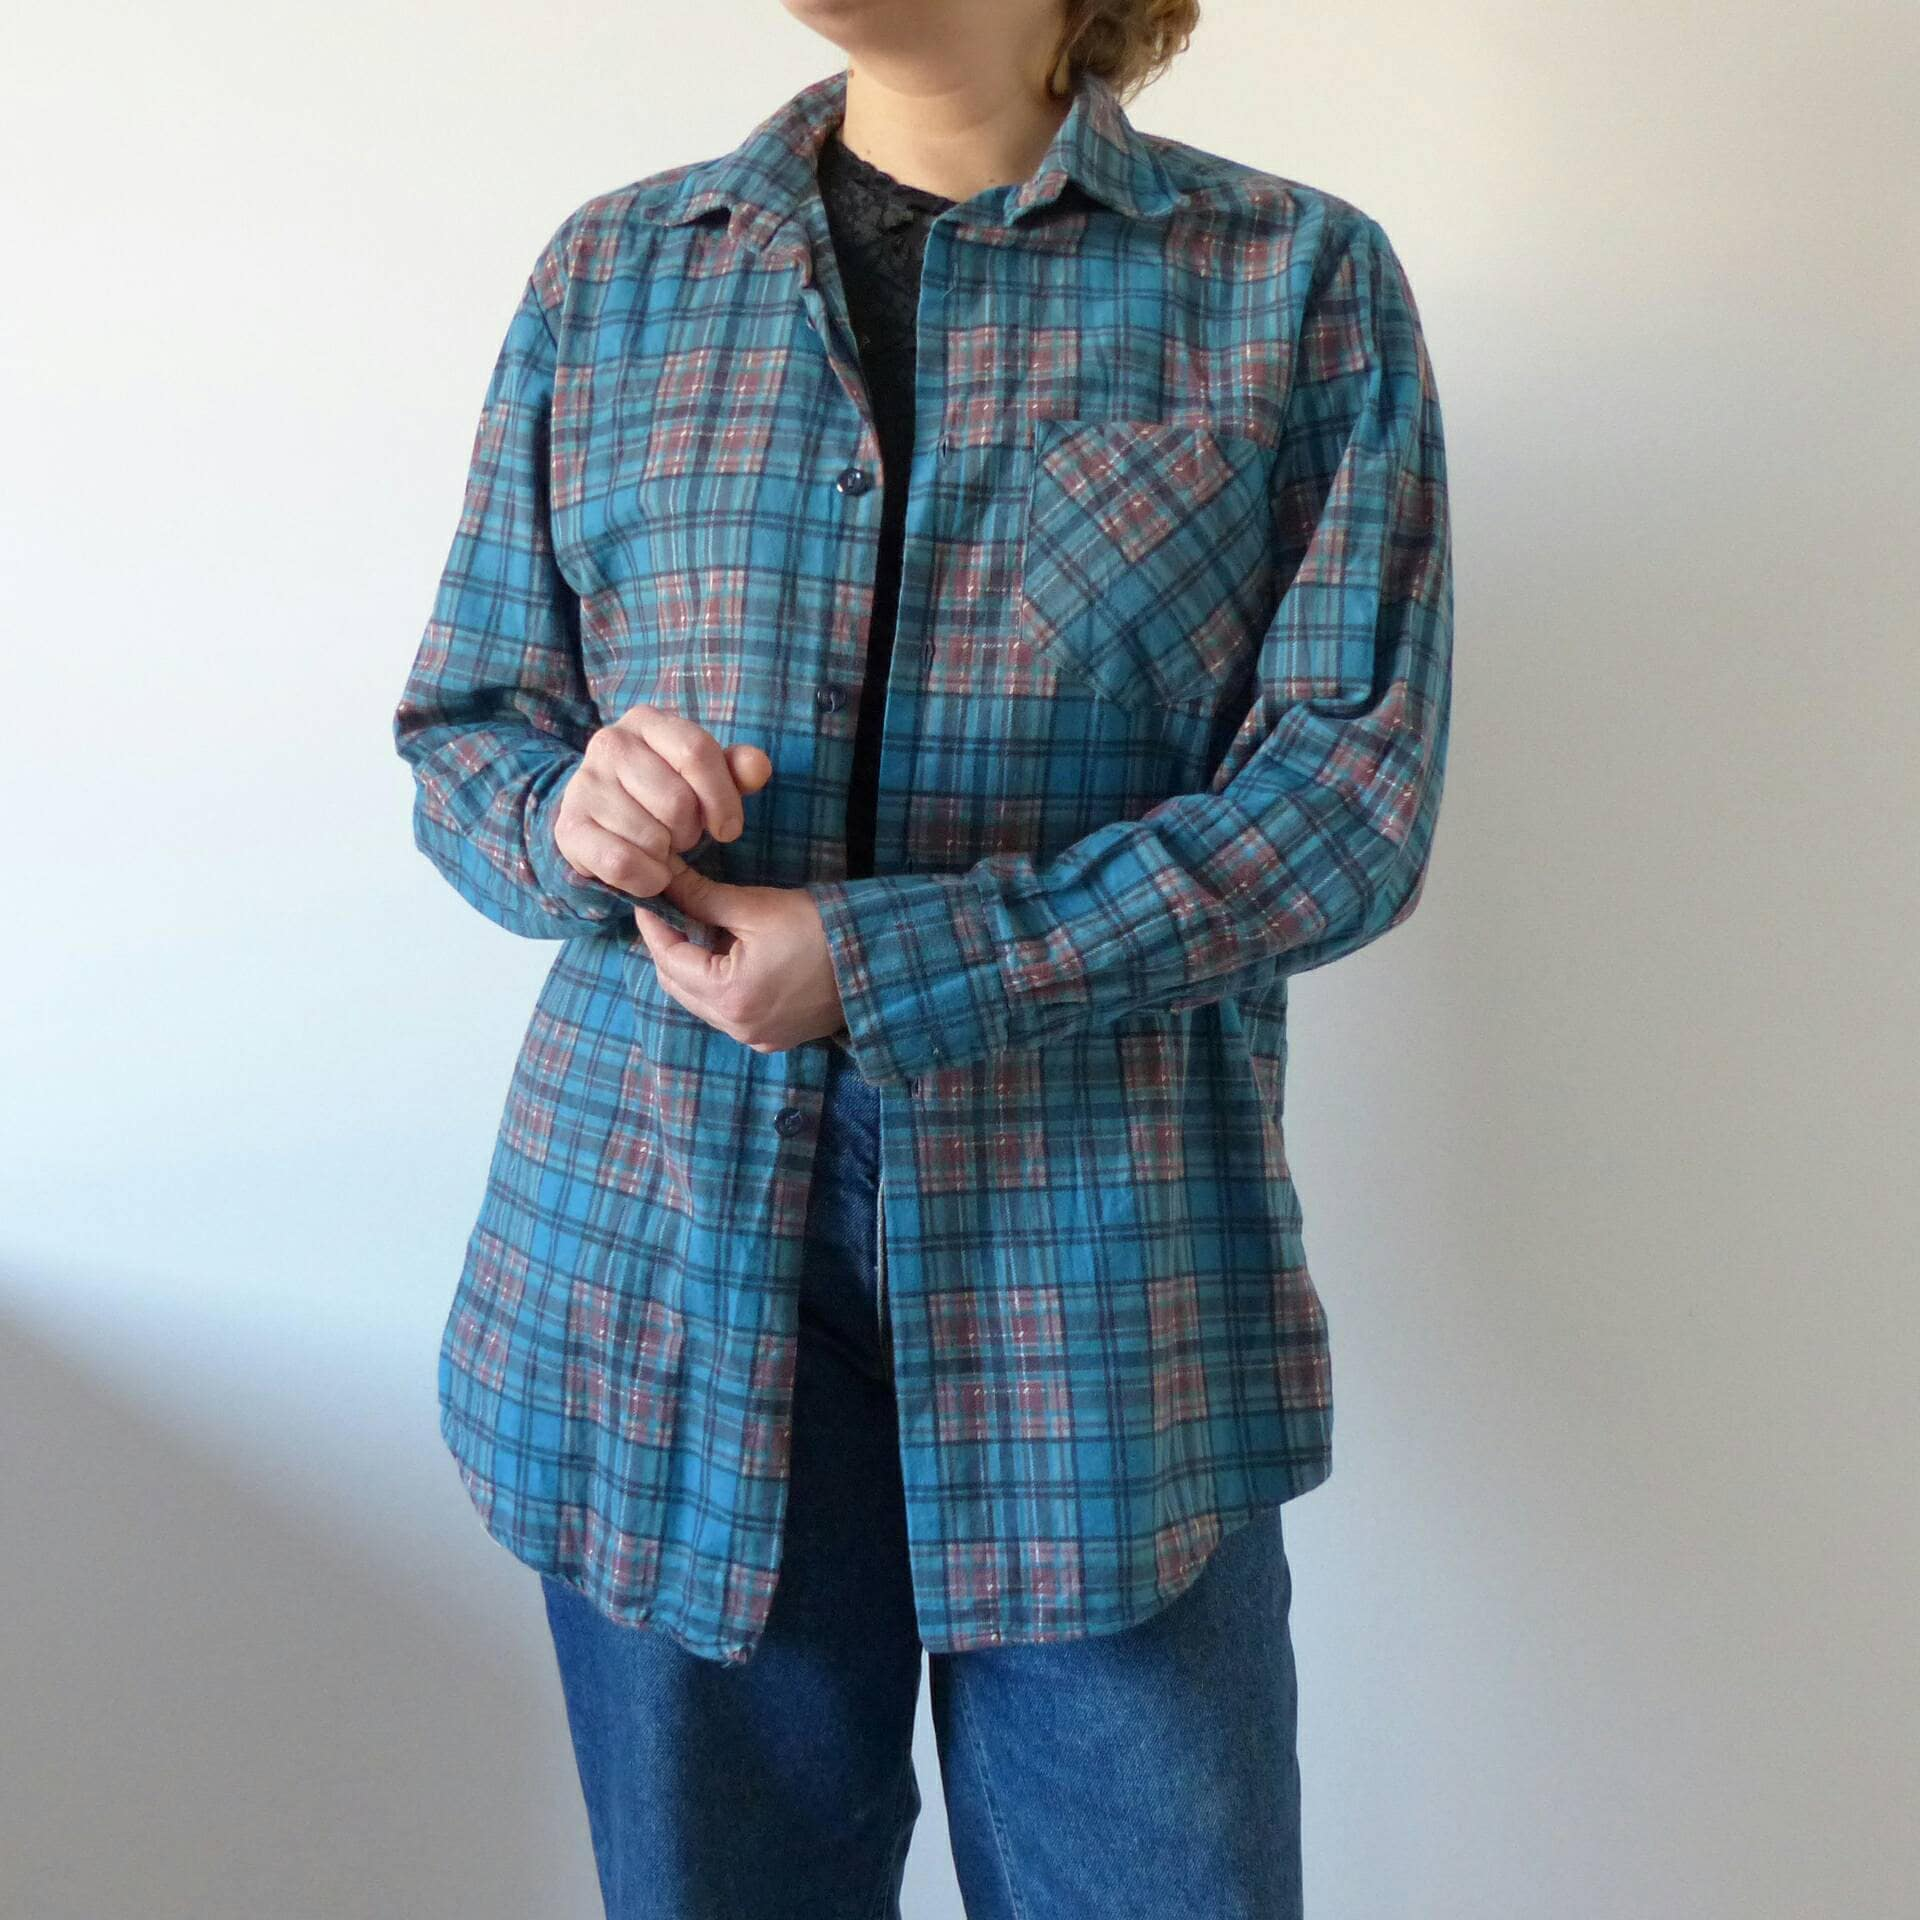 8b8e999b 70s Vintage Clothing, plaid shirt for men. Unisex checkered 90s grunge  shirt Casual button up shirt with pockets, grunge style clothing.